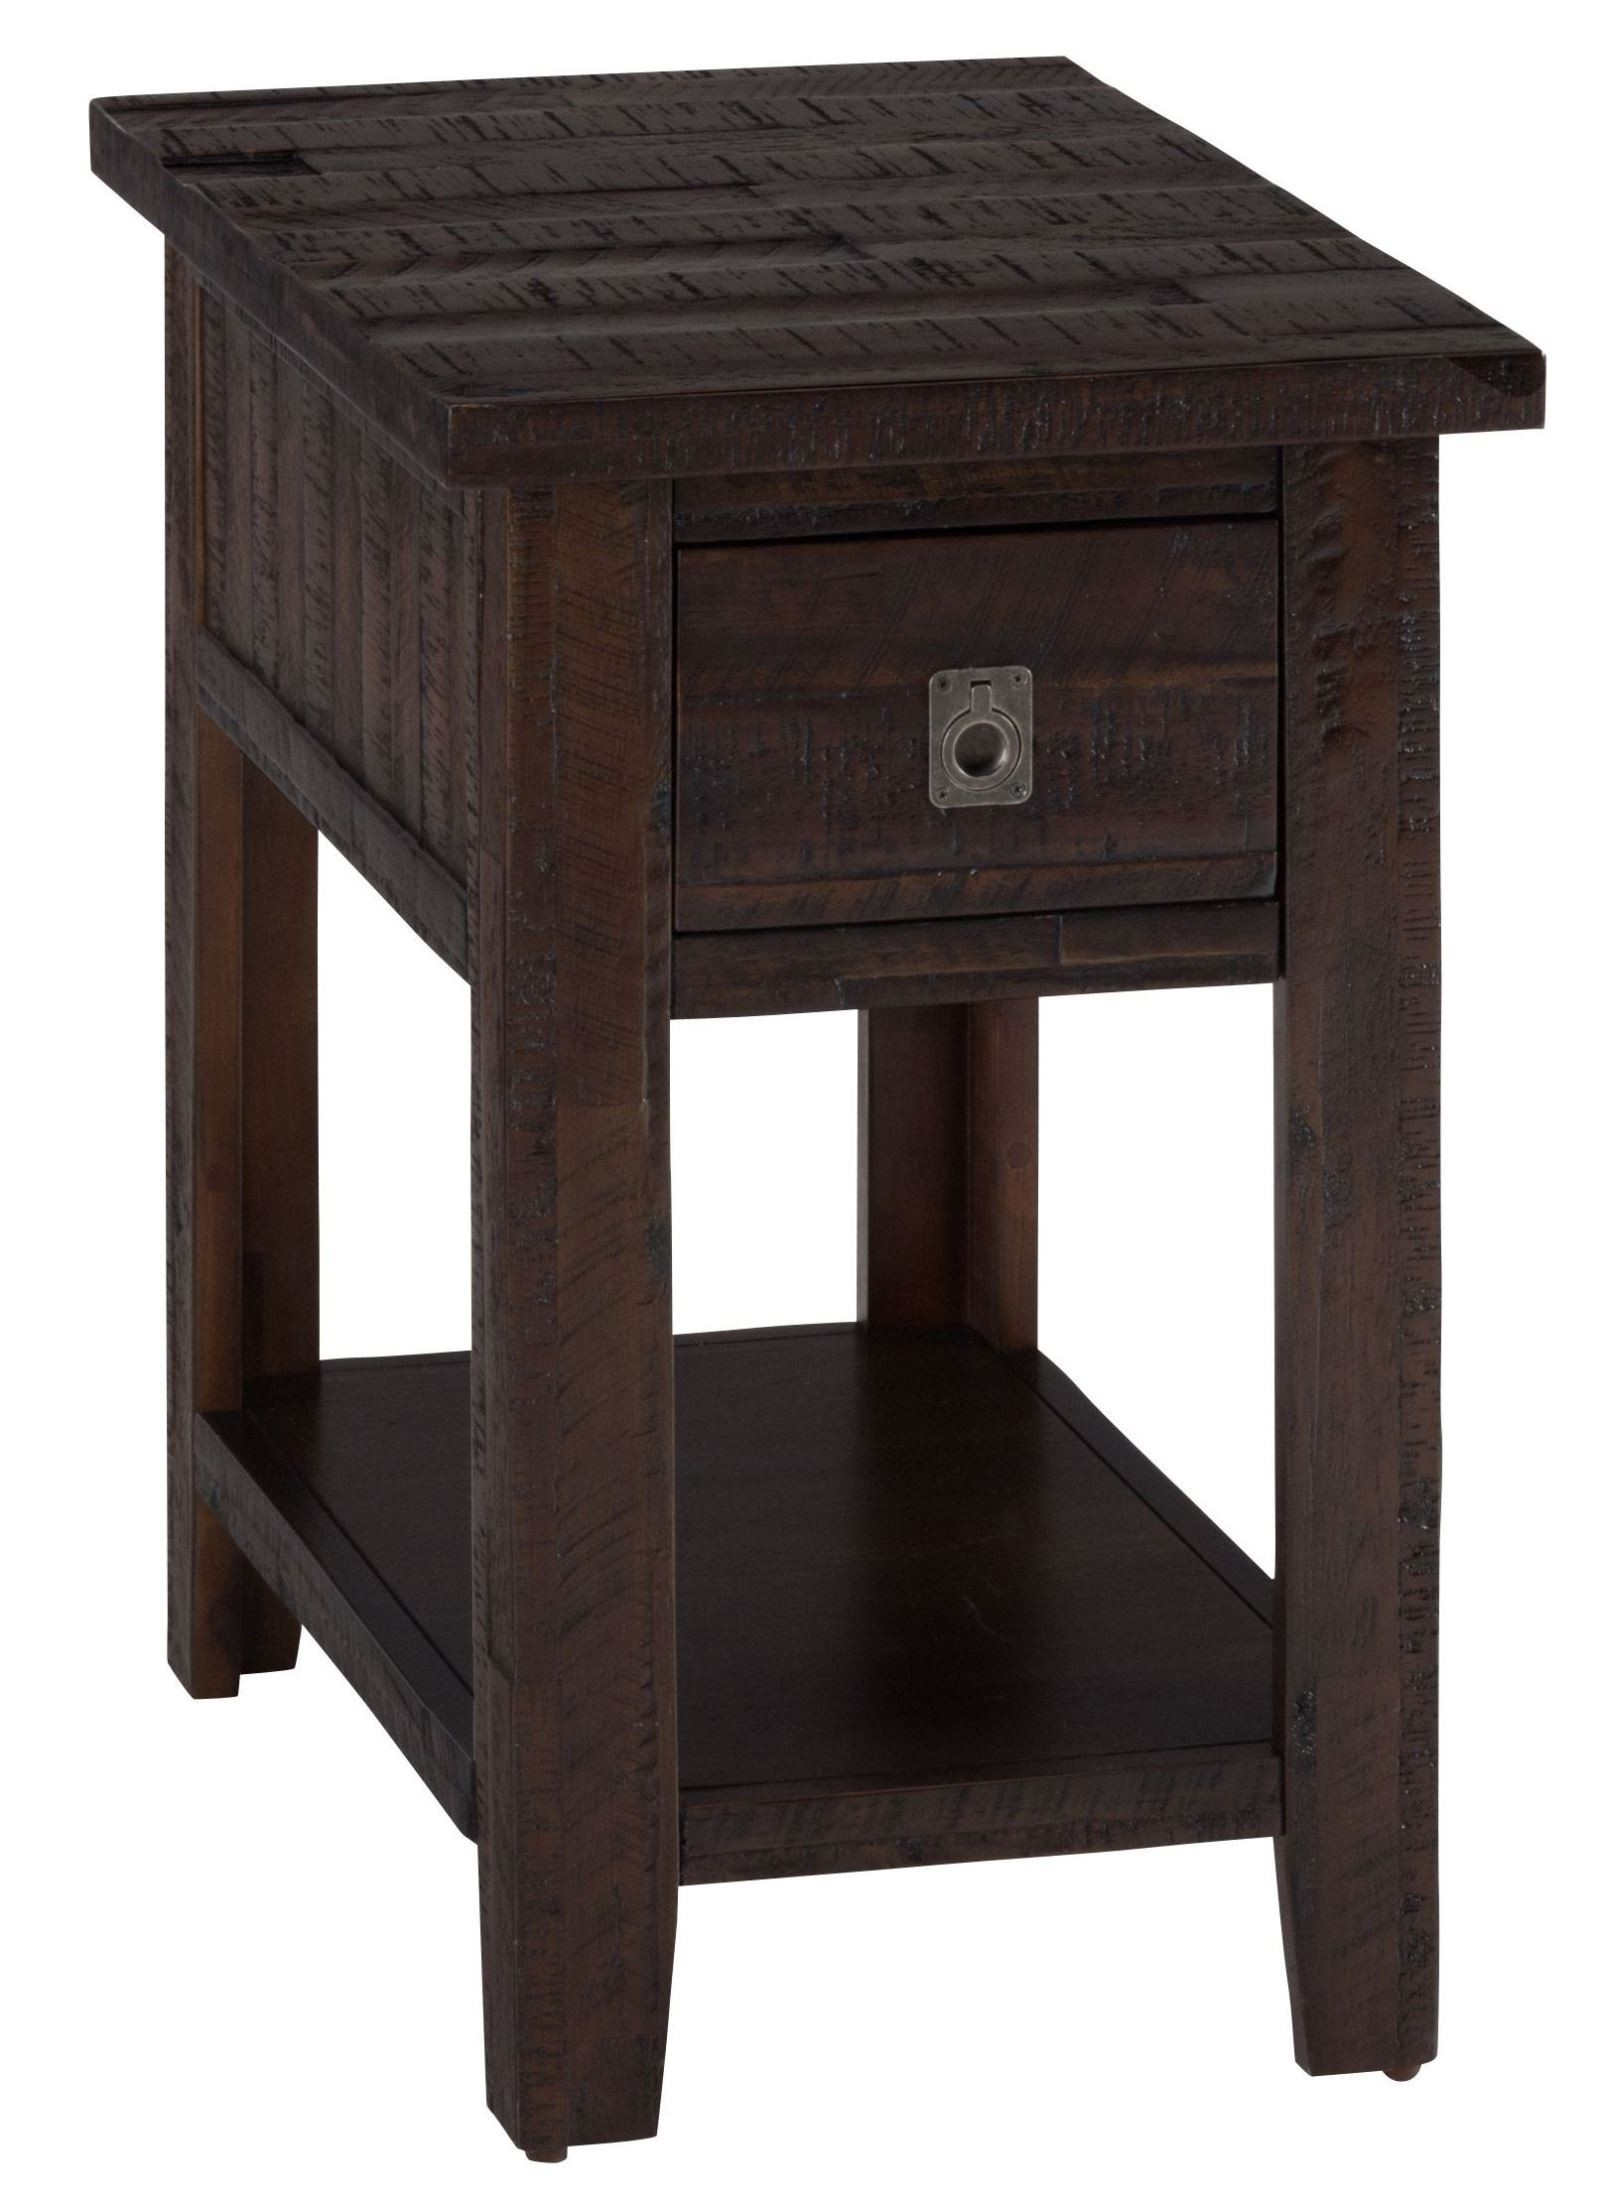 kona gove rustic chocolate chairside table 704 7 jofran